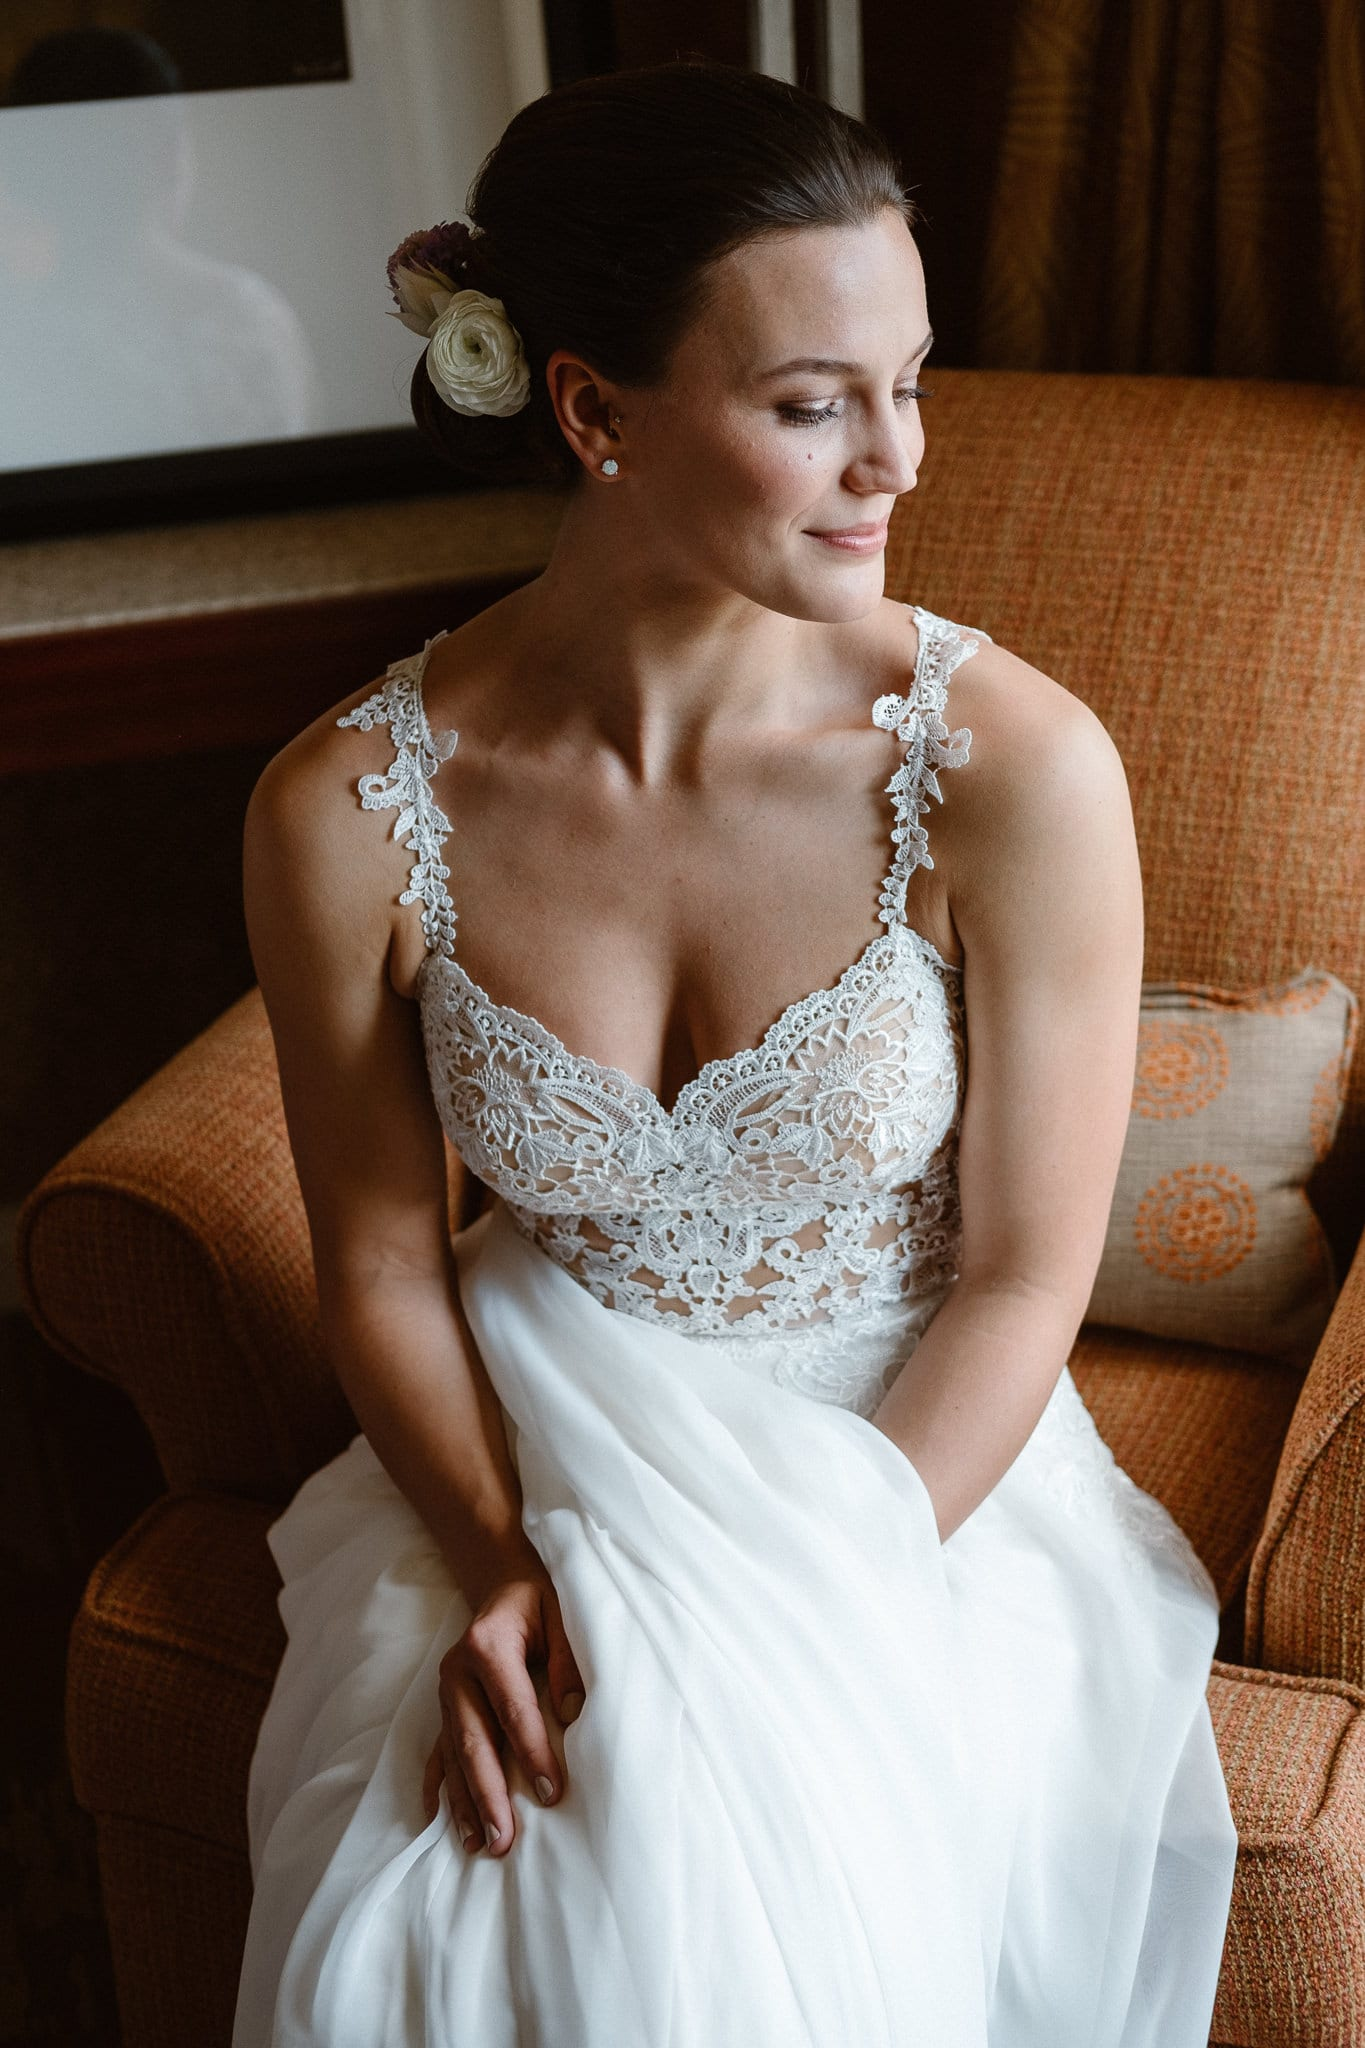 Bride getting ready for Colorado mountain elopement at St. Julien Hotel, Boulder wedding photographer, classic bridal portrait